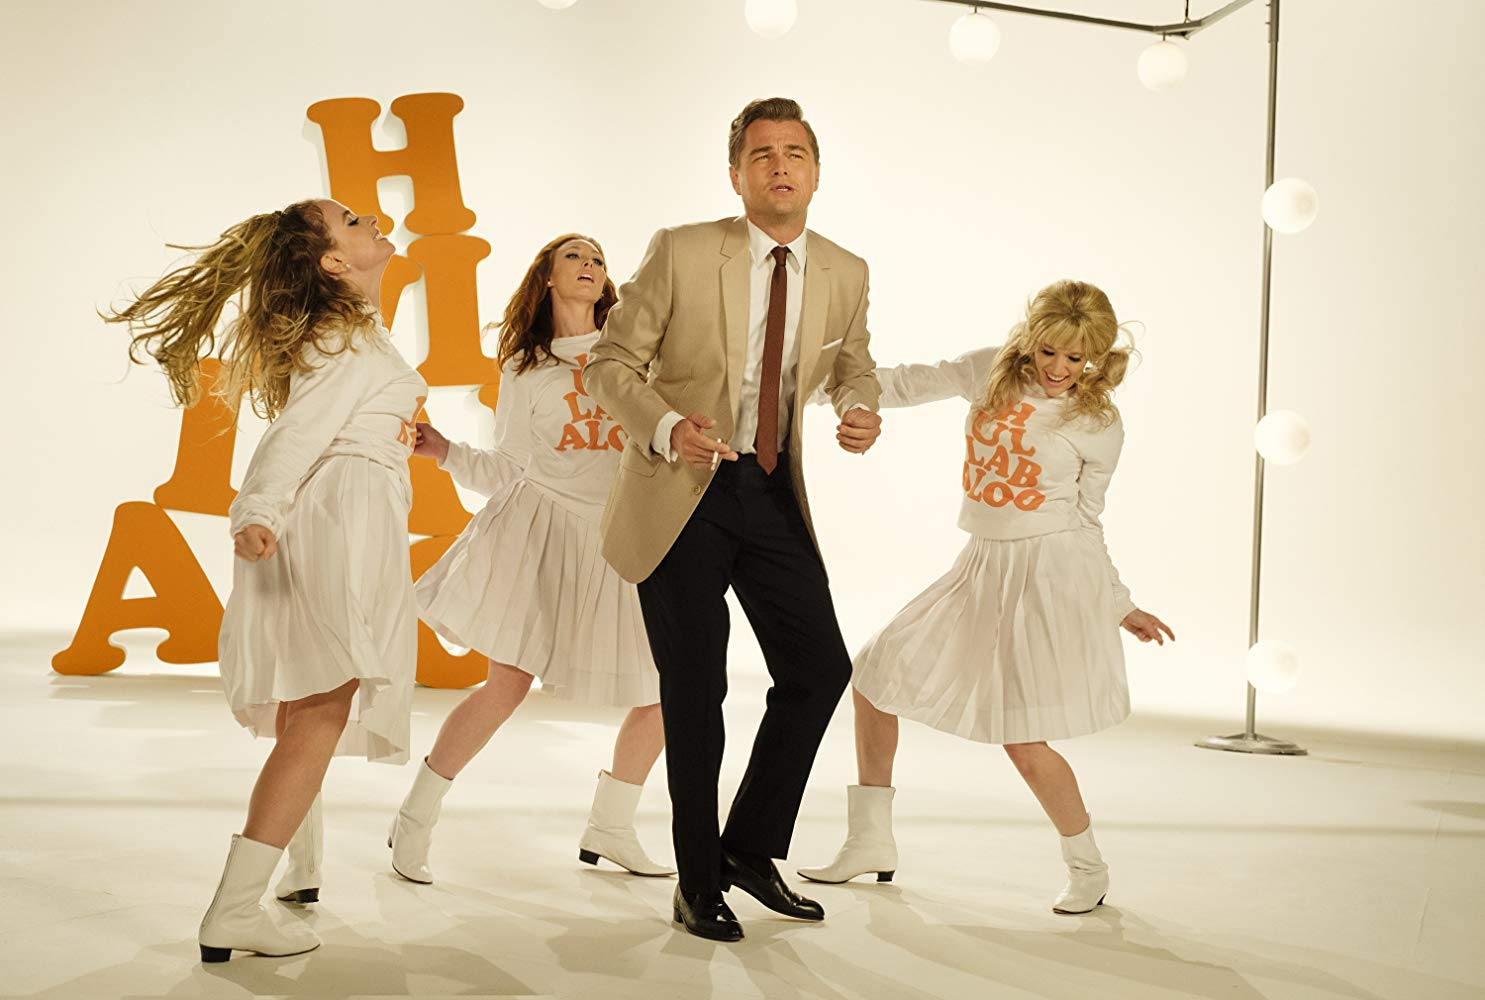 Leonardo DiCaprio in Once Upon a Time in Hollywood (2019)